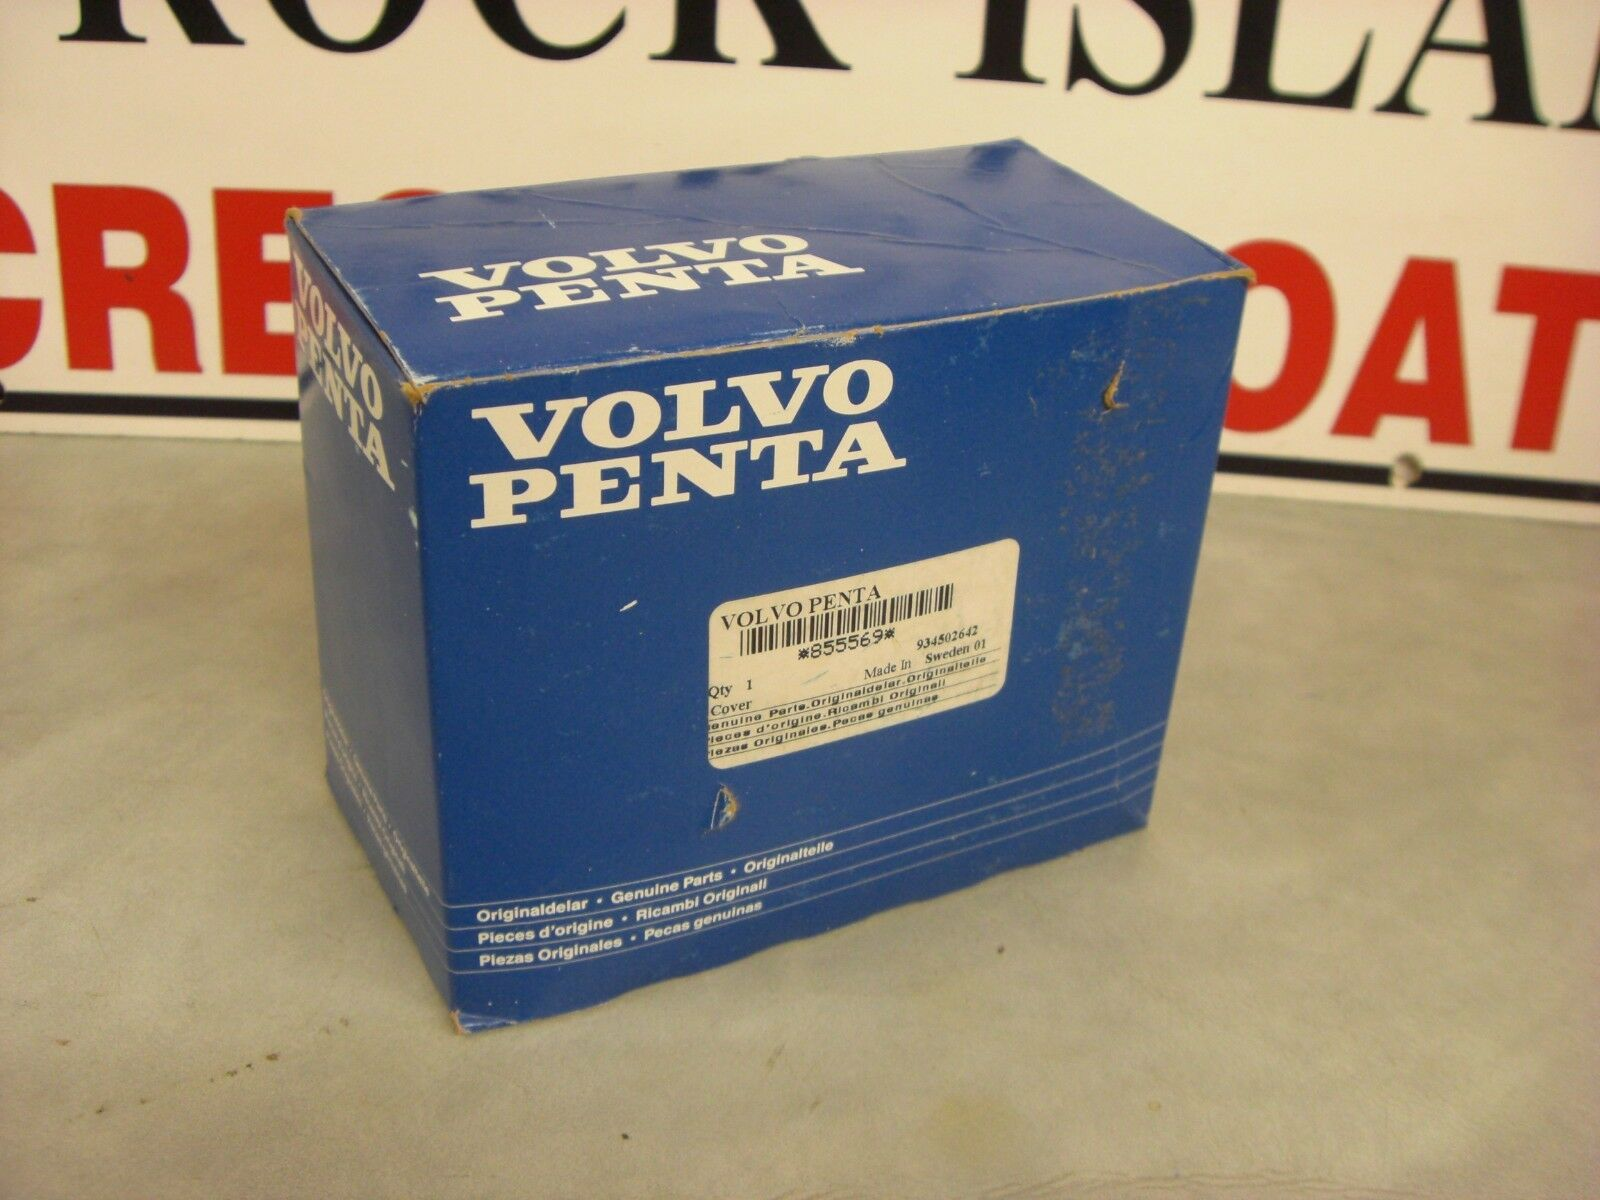 NOS OEM Volvo Penta 855569 Fuel Filter Cap for sale online | eBay  Pat Fuel Filter Location on fuel injection, catalytic converter location, fuel level sensor, fuel filters by dimensions, fuel injector, blower motor resistor location, ignition module location, transmission fluid location, fuel sending unit, fuel sensor problems nissan, engine control unit location, egr valve location, fuel line, fuel system, fuel pro 382, fuel capacity, fuel pump, fuel tank, fuel gauge, flywheel location,